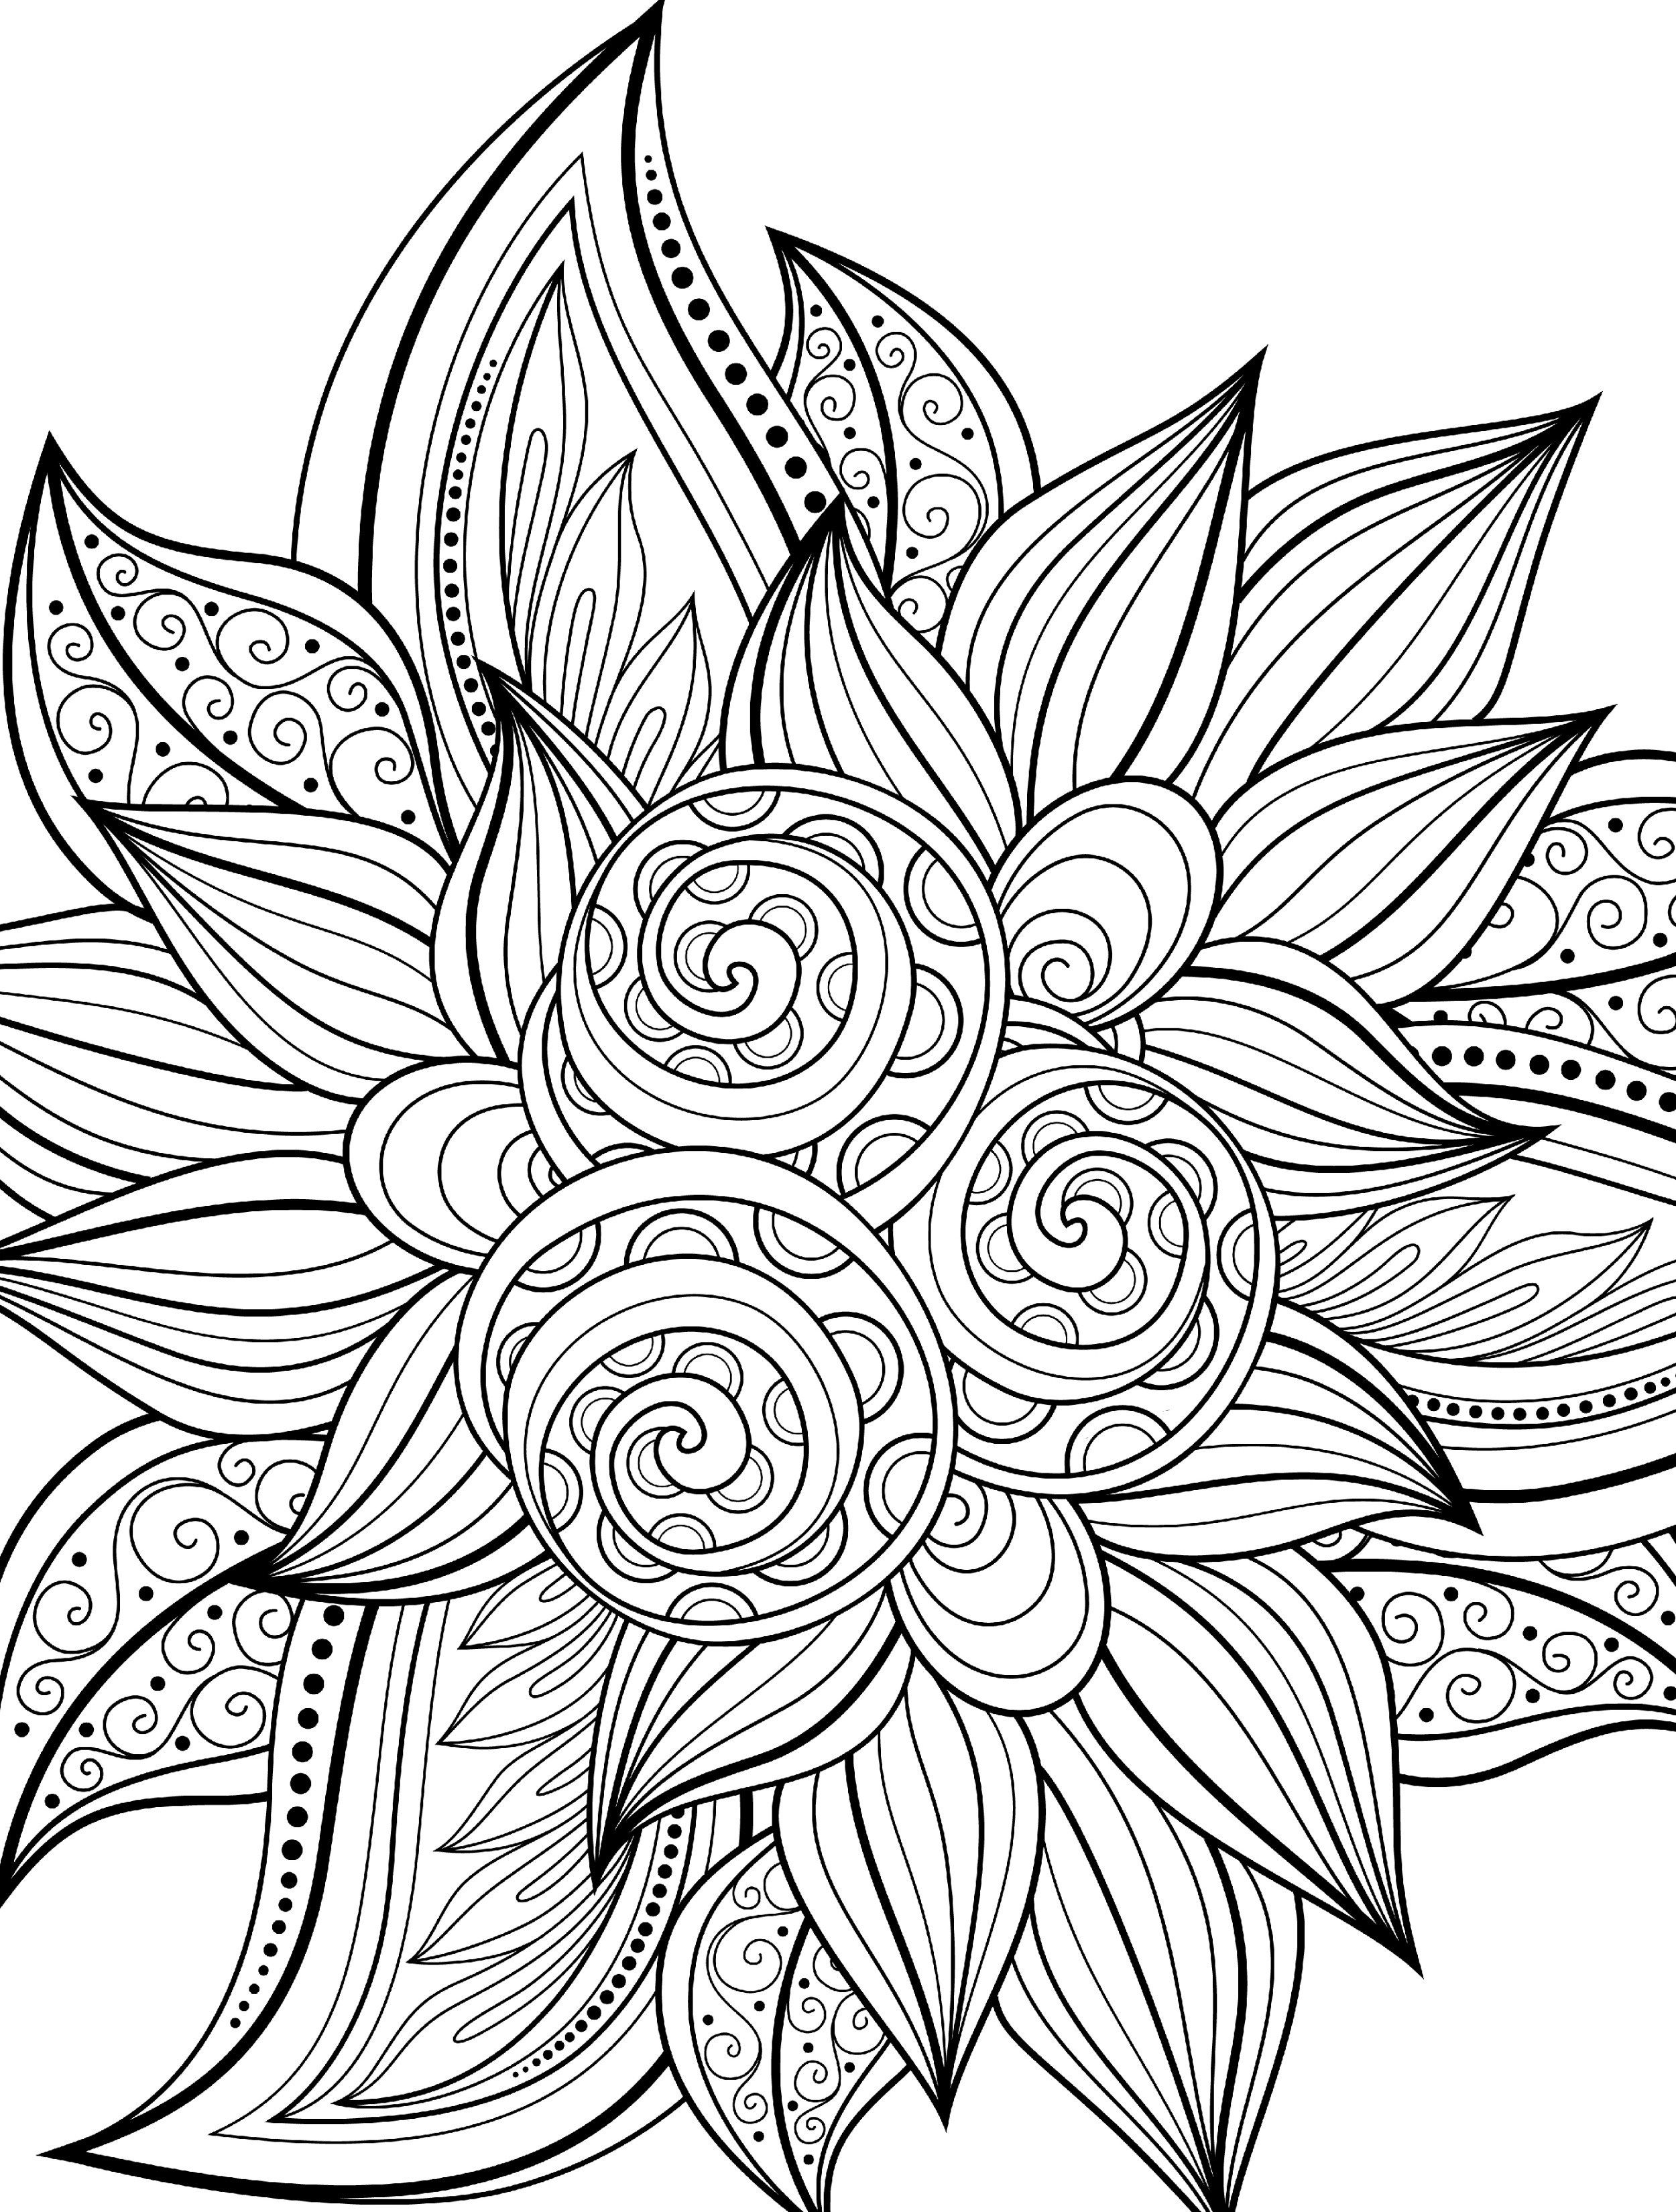 Free Printable Coloring Pages Cool Designs Coloring Coloring Pages